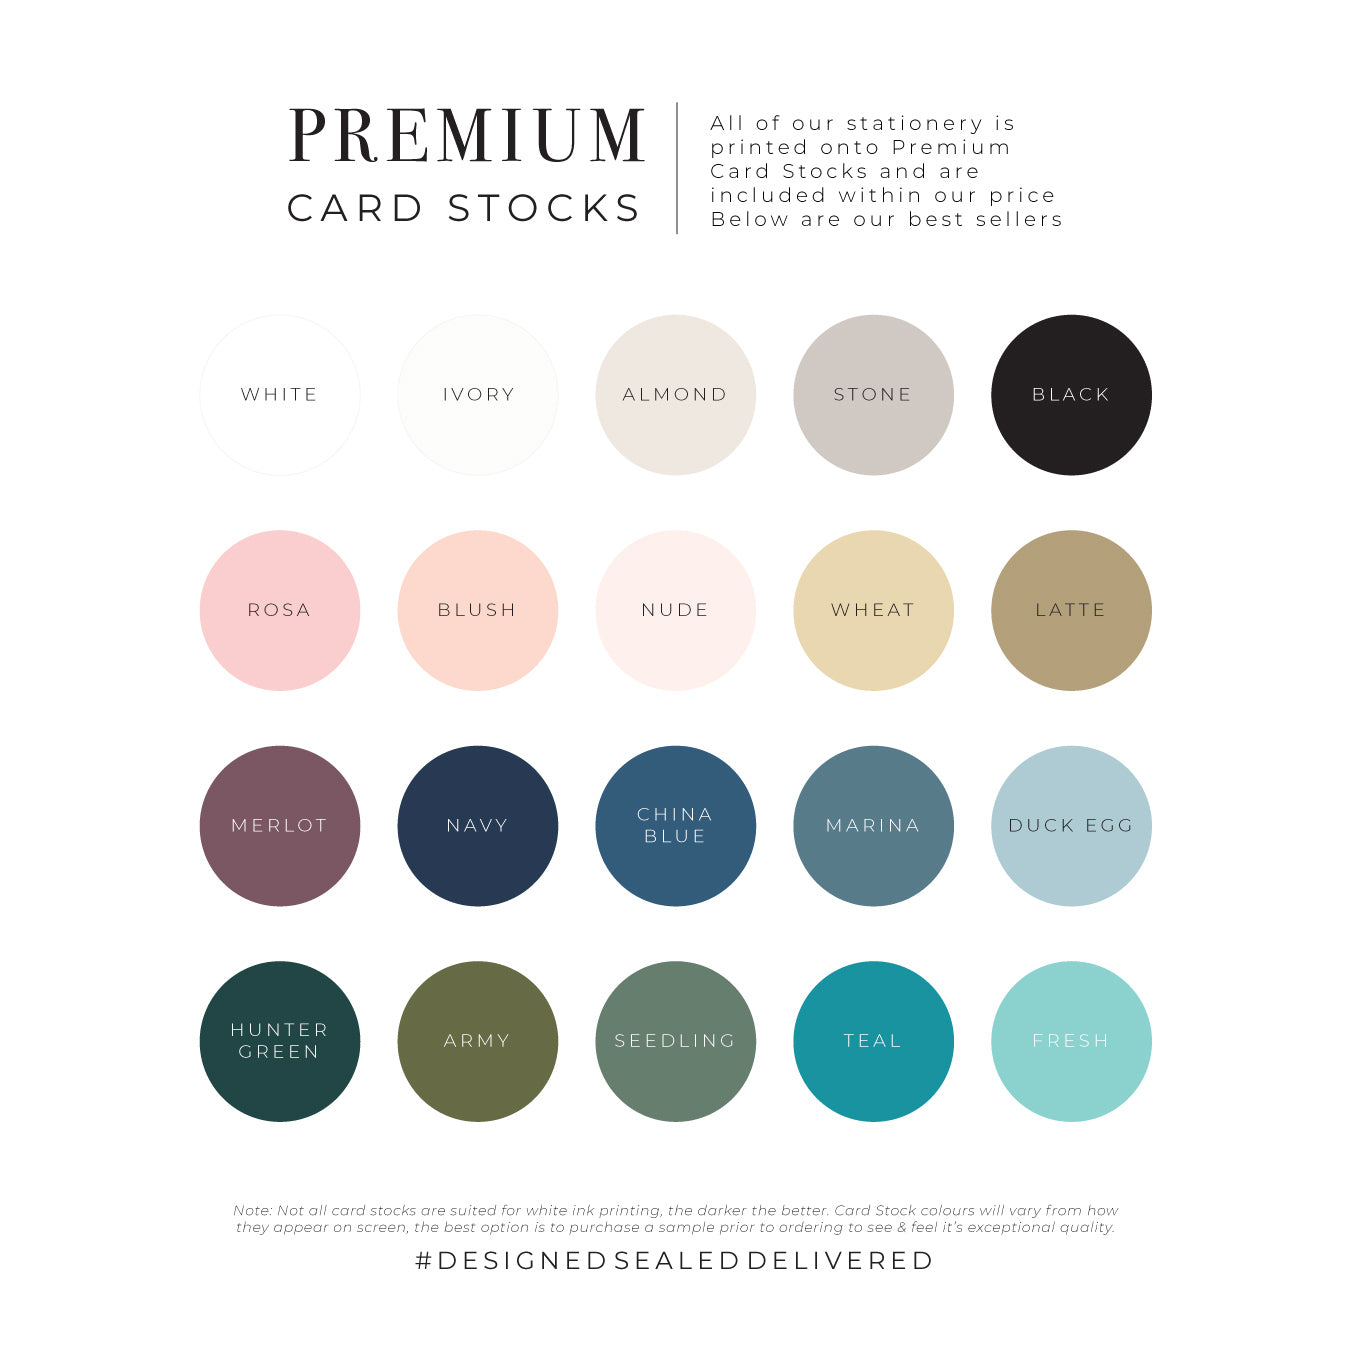 DSD Premium Card Stocks best seller colour swatches